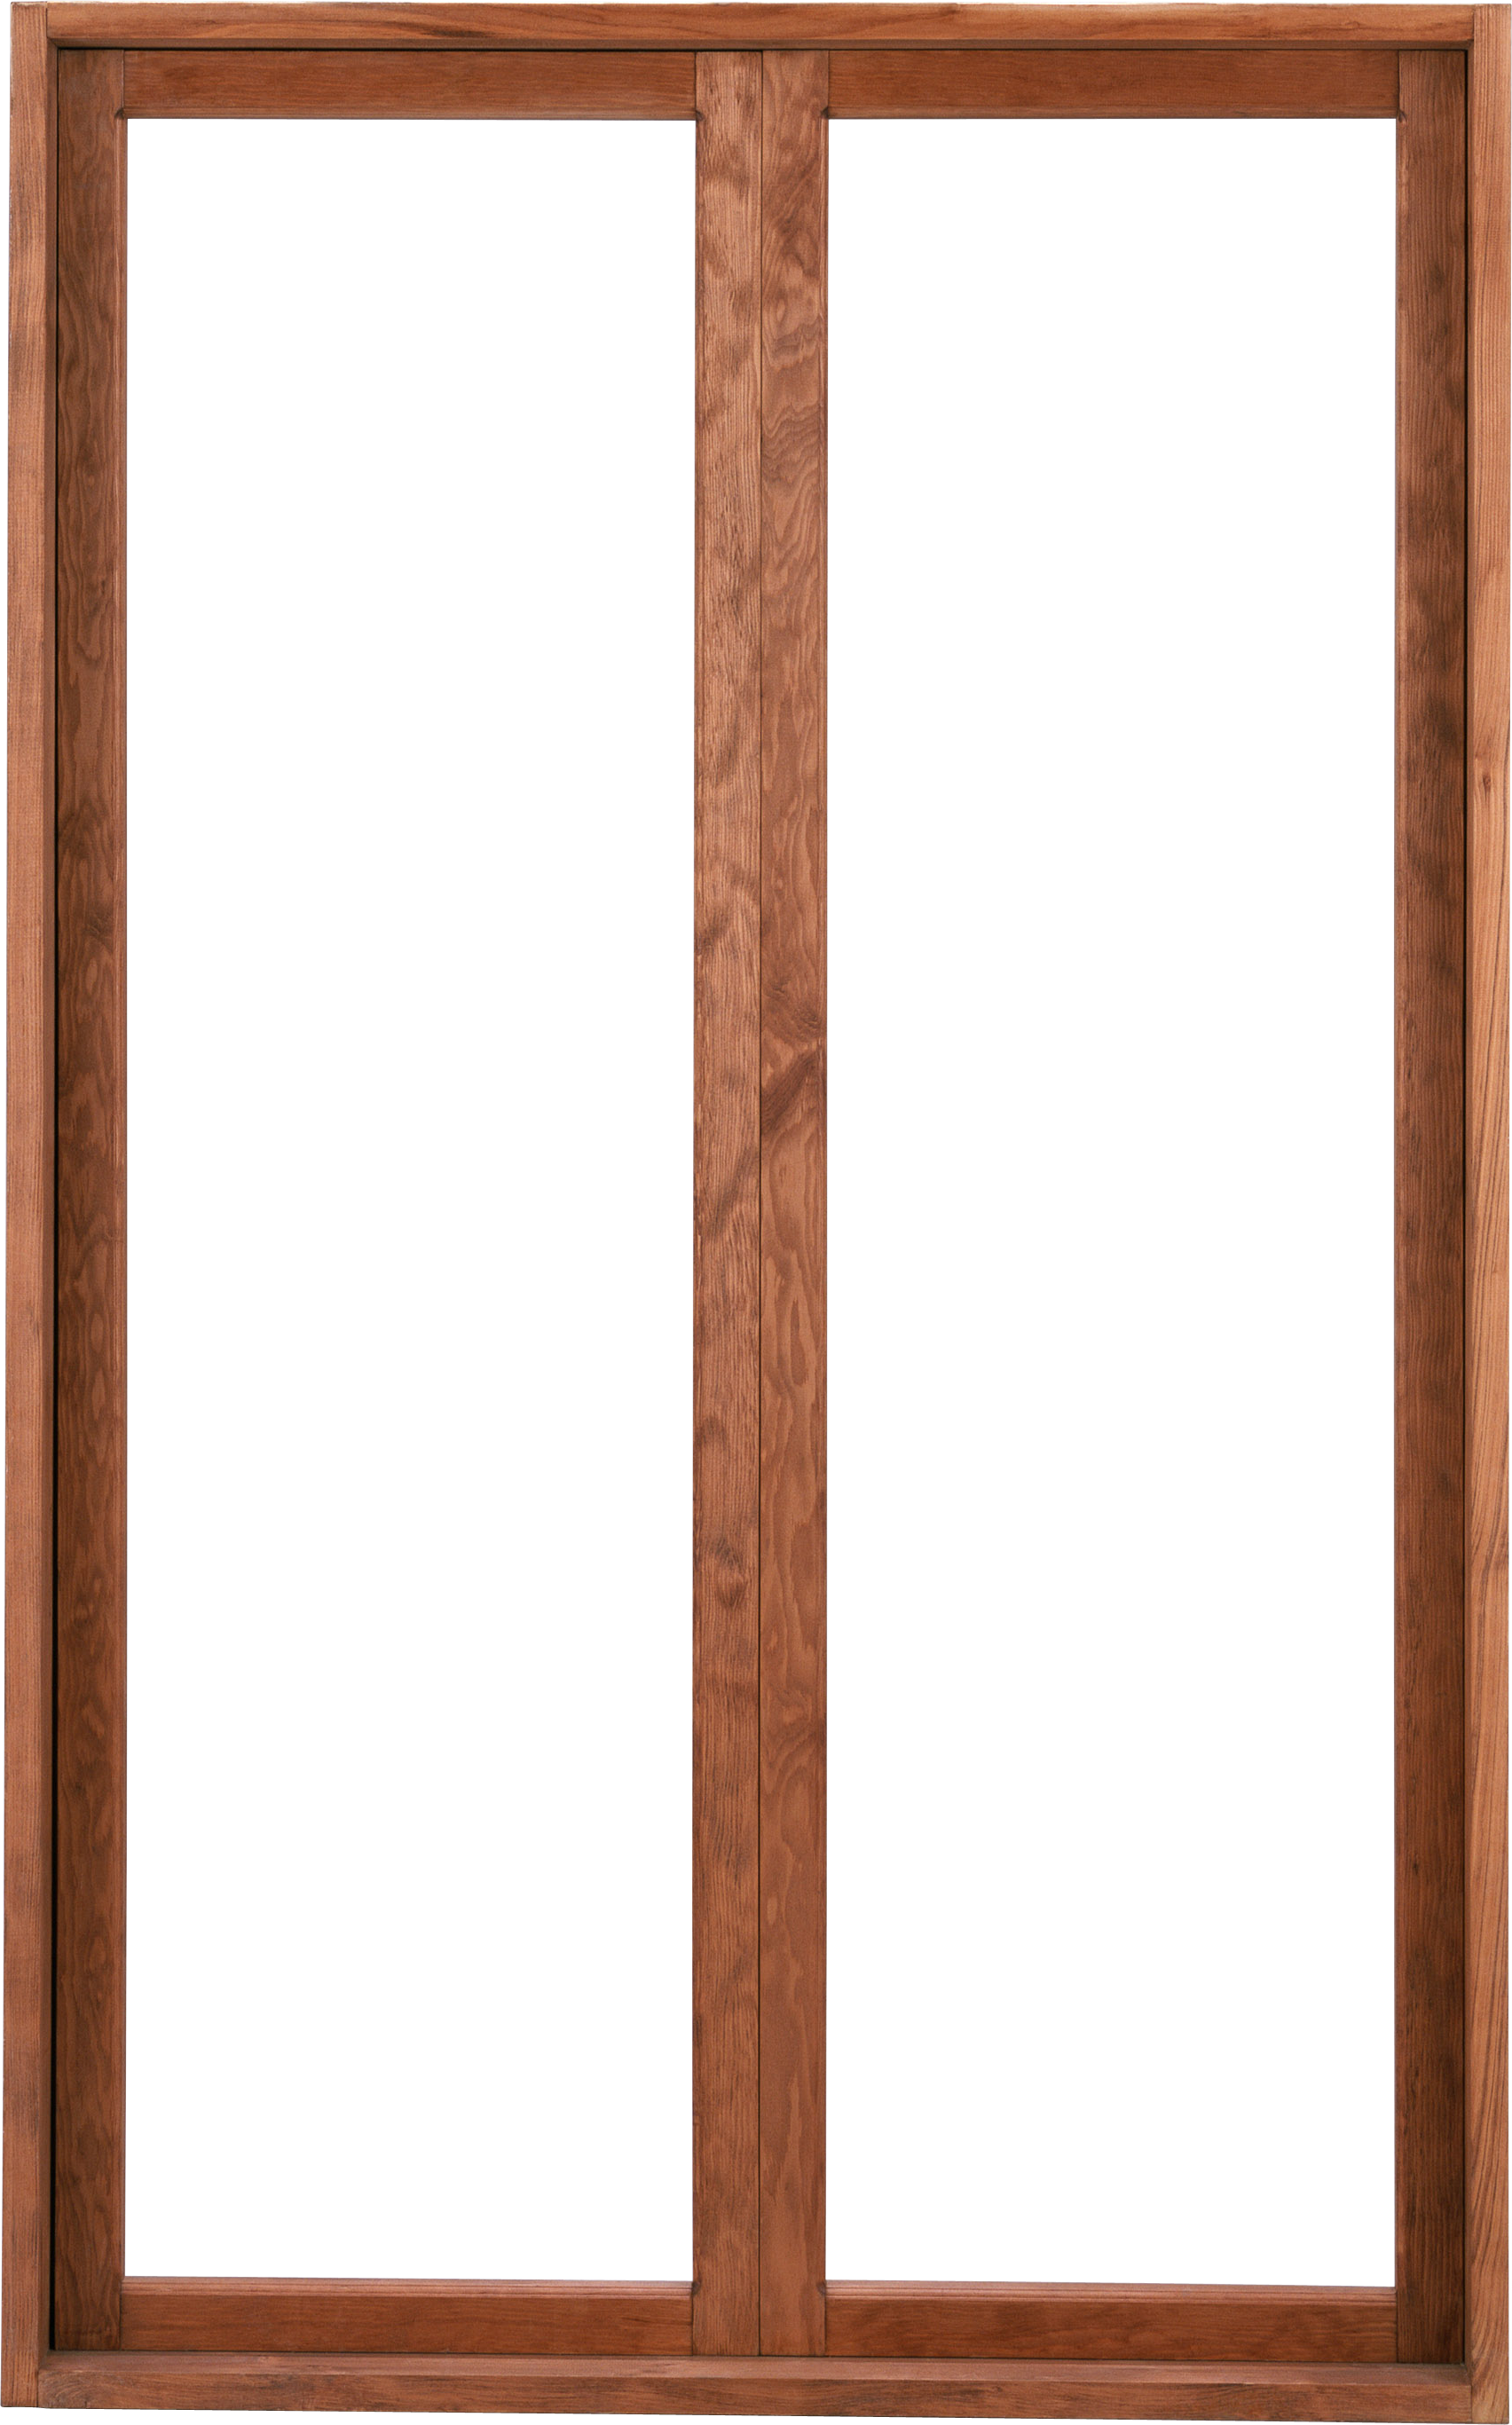 Window frame png. Images free download open